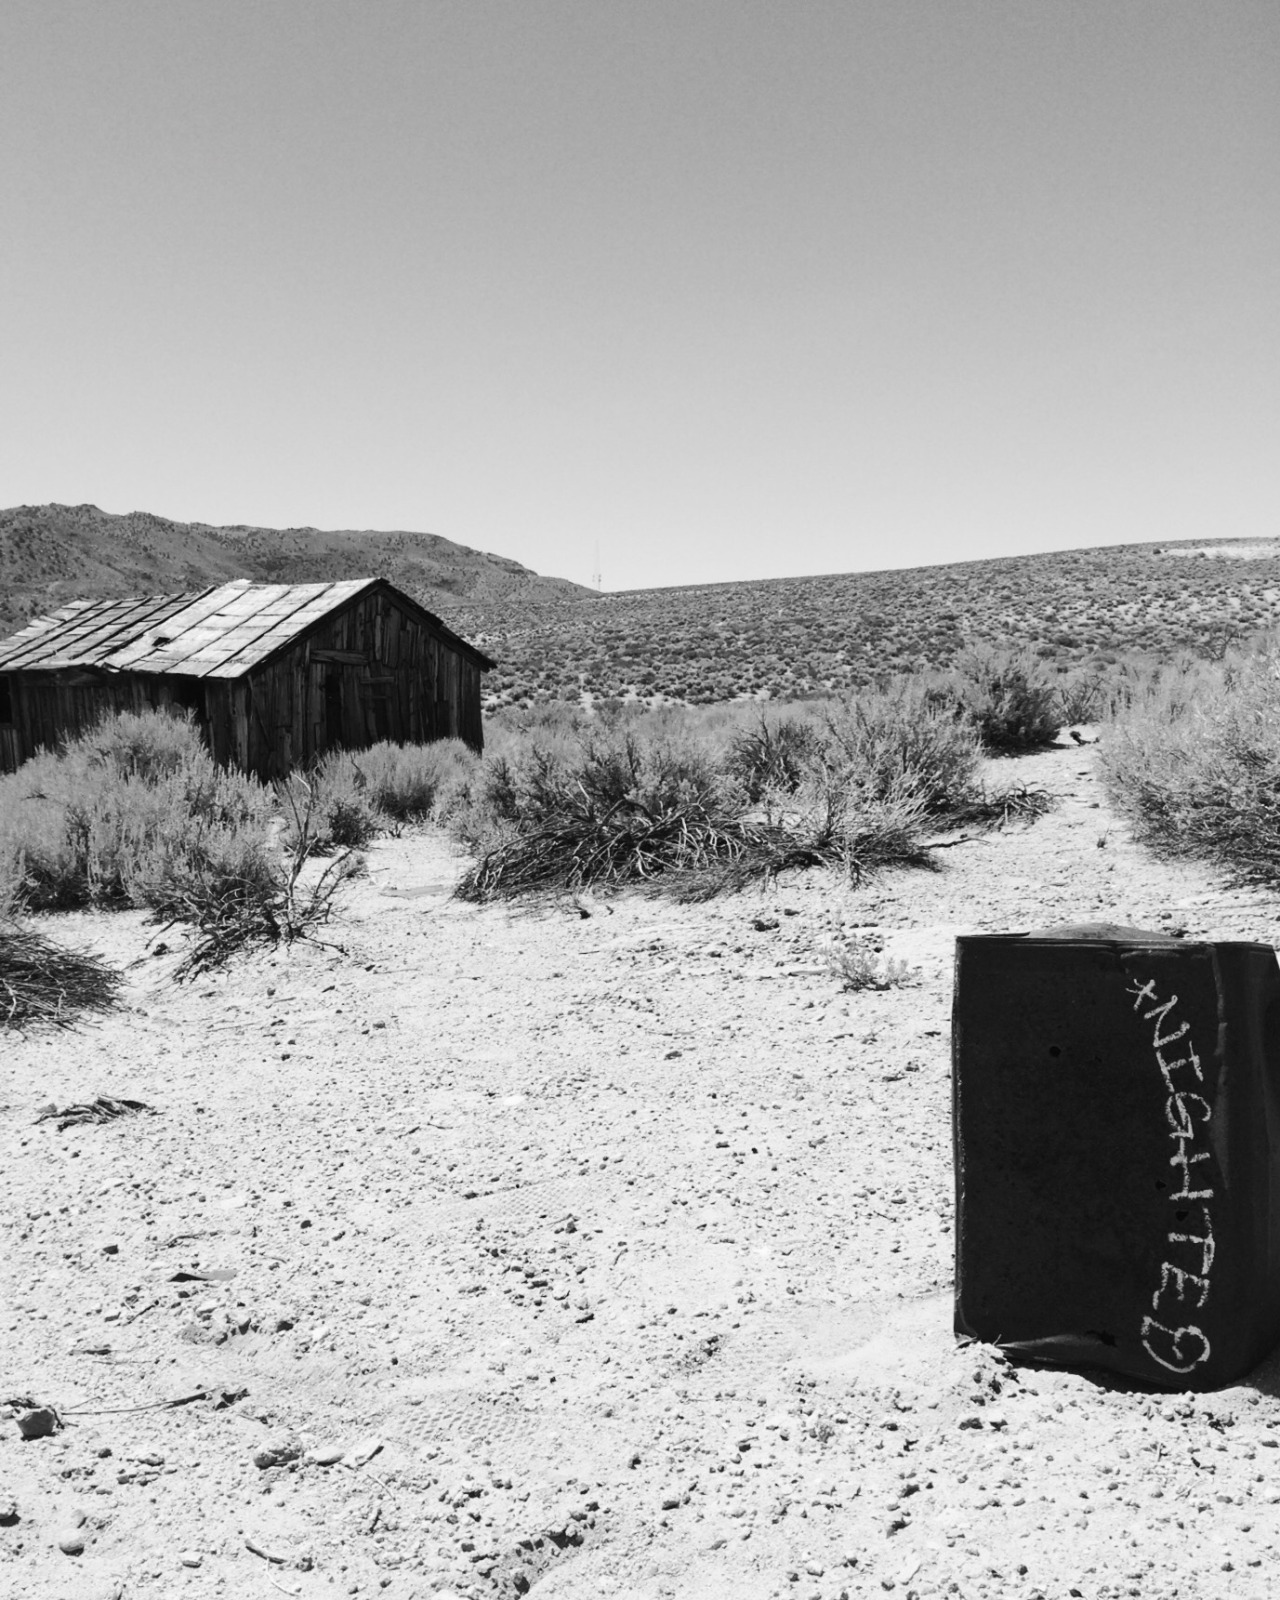 Day 3📍Las Vegas, NV to a ghost town in Northern AZ